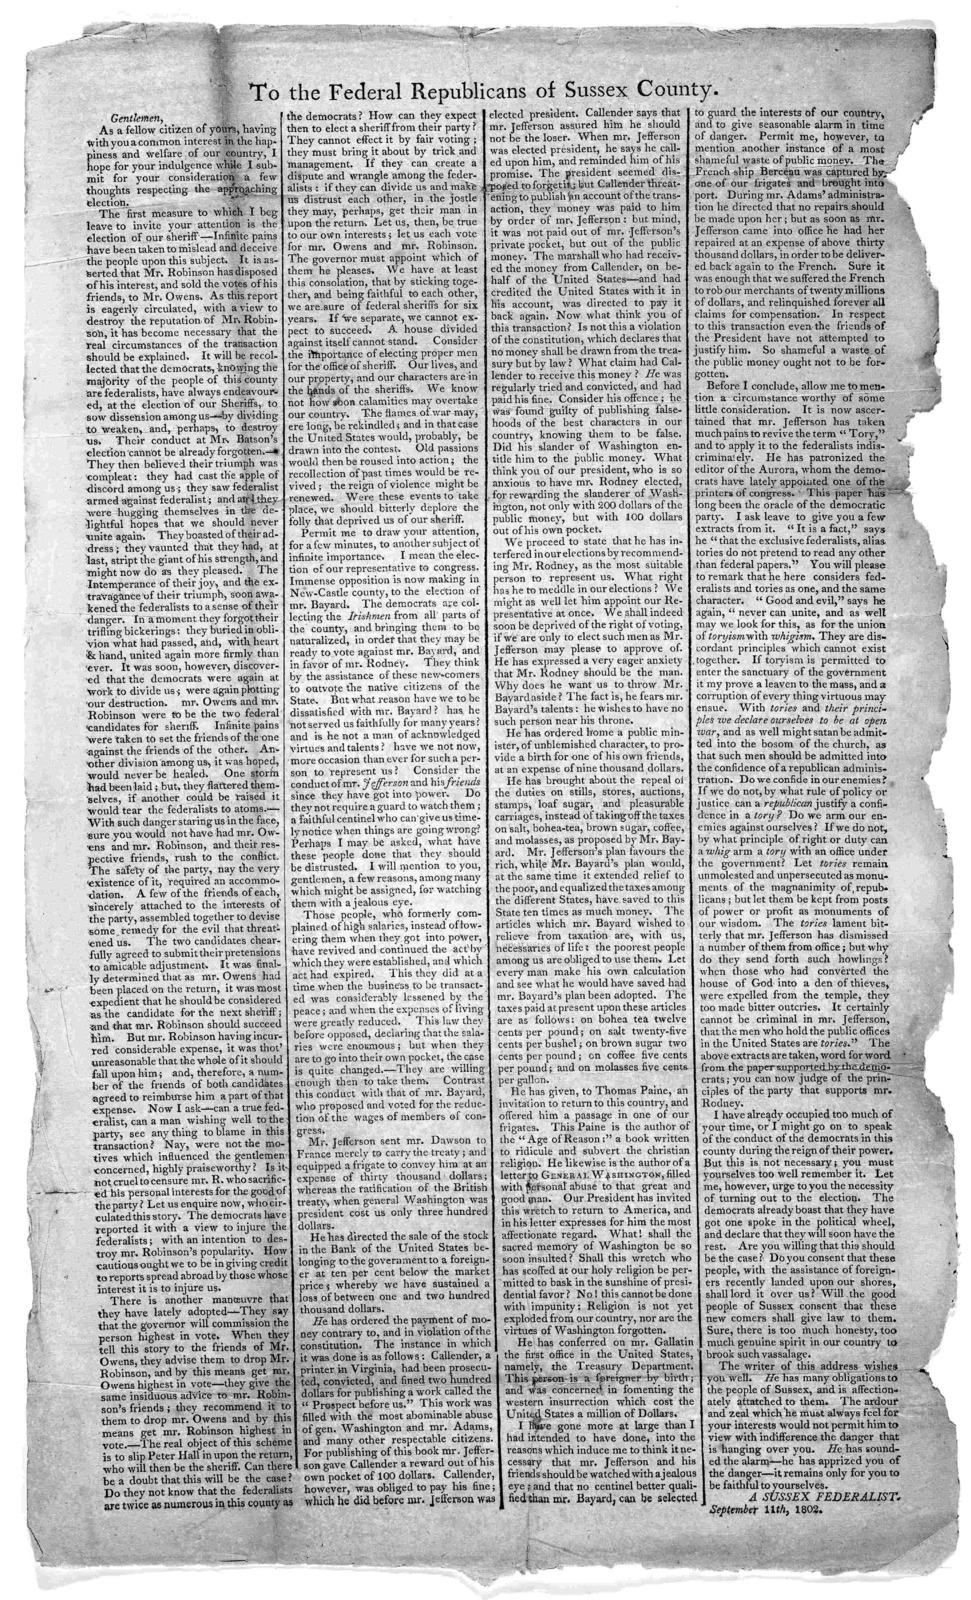 To the federal republicans of Sussex County [Regarding candidates for election] A Sussex Federalist. September 11th, 1802.